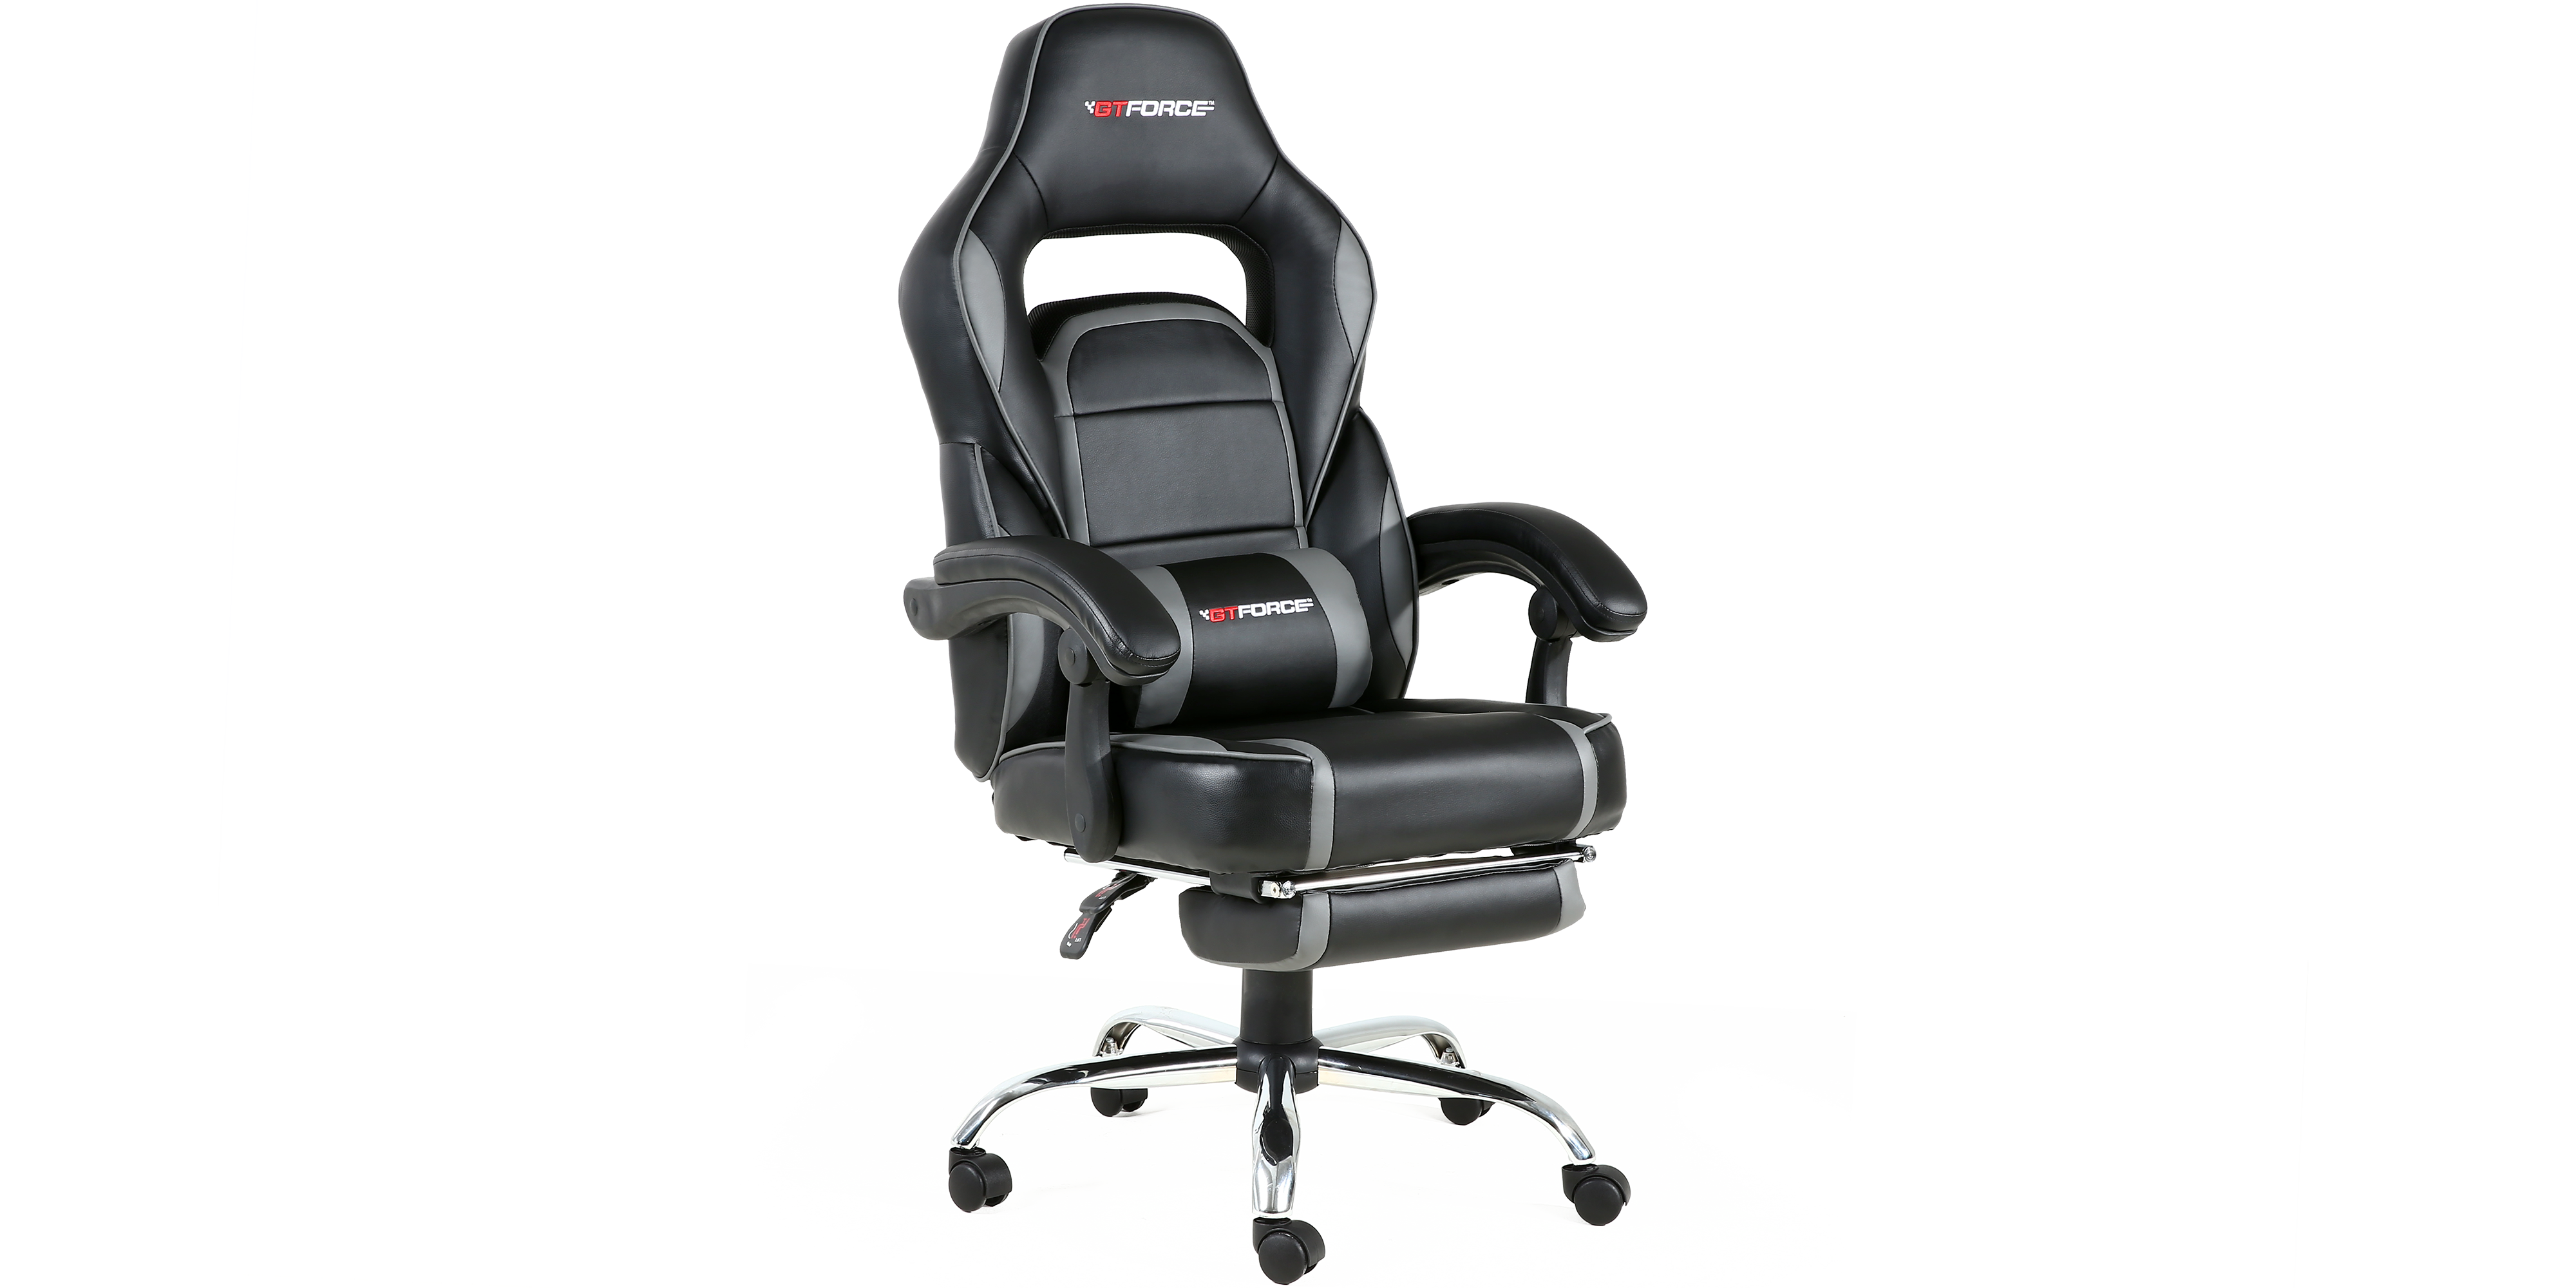 Pace Gaming Chair With Recline And Footrest In Black Grey